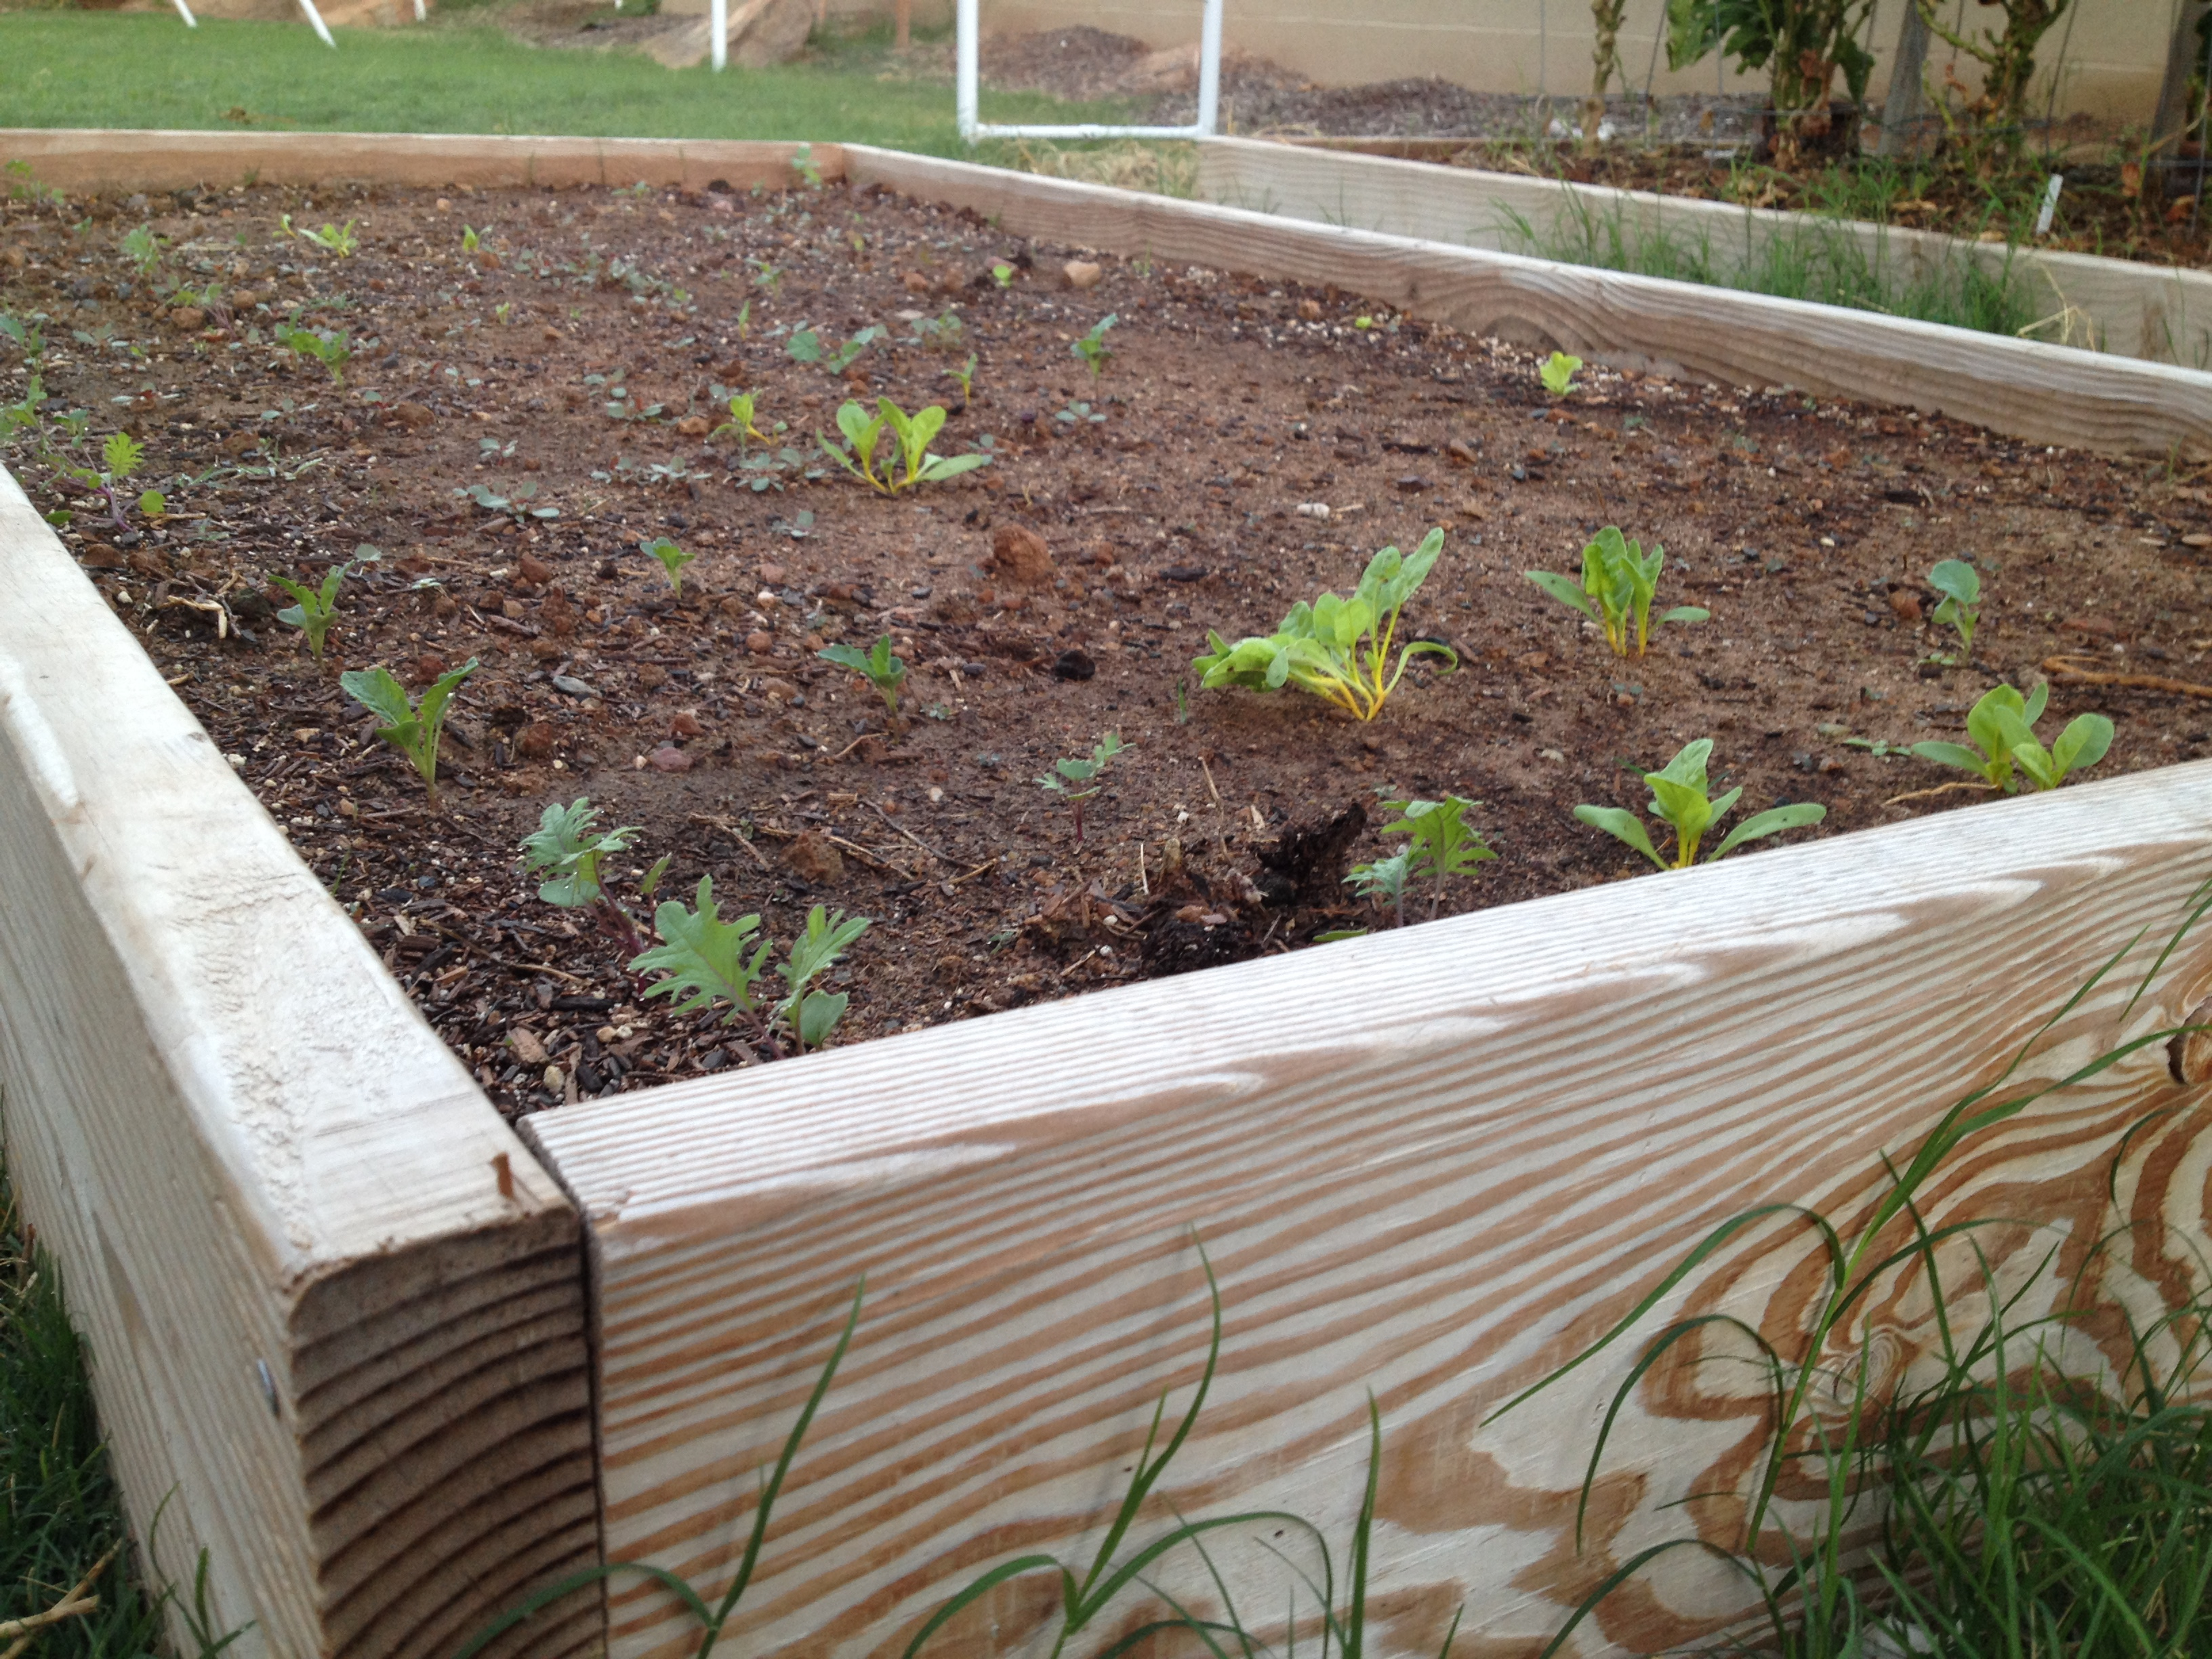 How to start a raised bed garden - Lots Of Sprouts In A Raised Bed